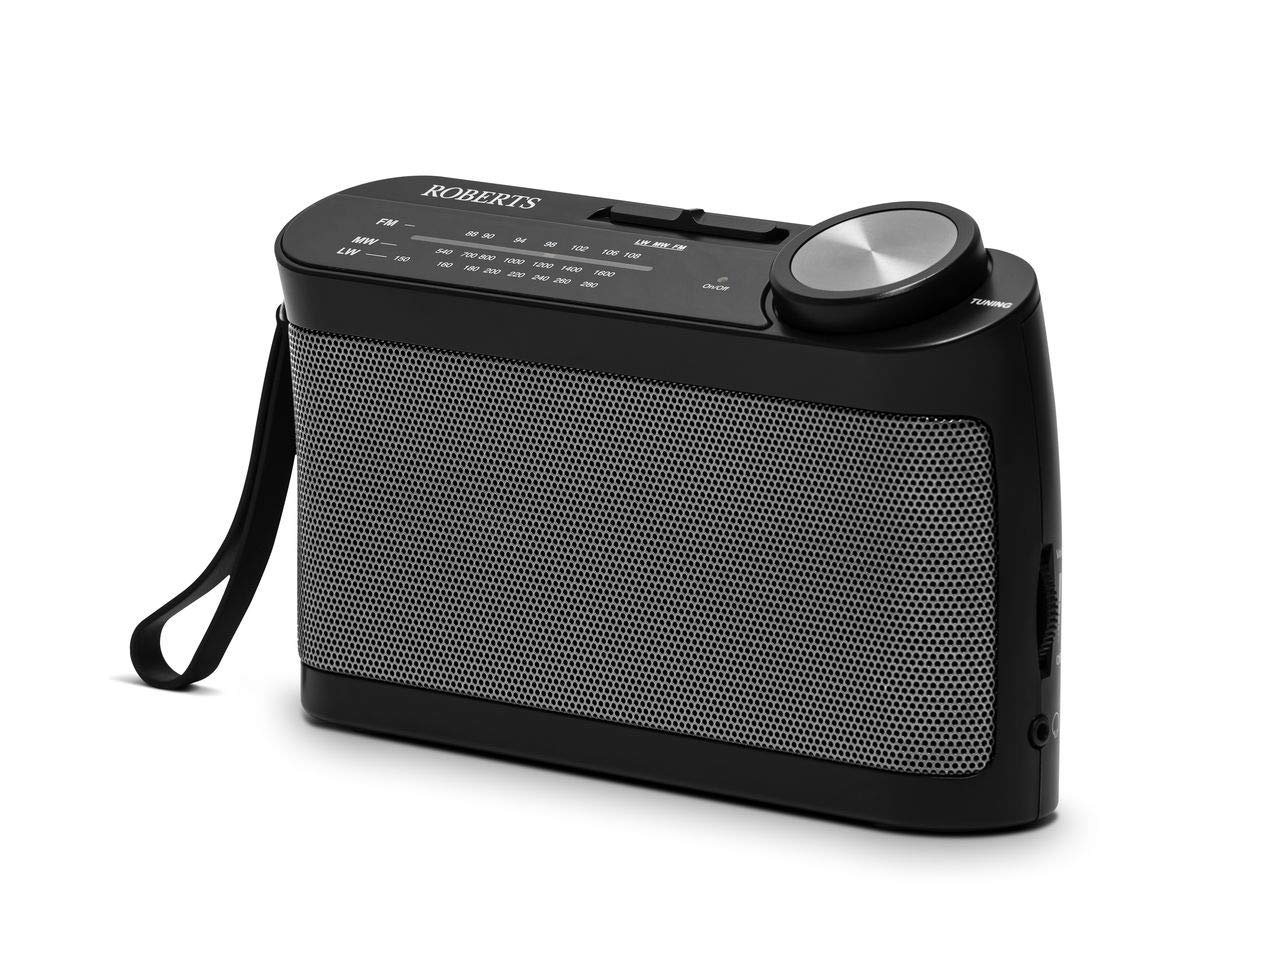 Roberts Radio R9993 Portable 3-Band LW/MW/FM Battery Radio with Headphone Socket - Black